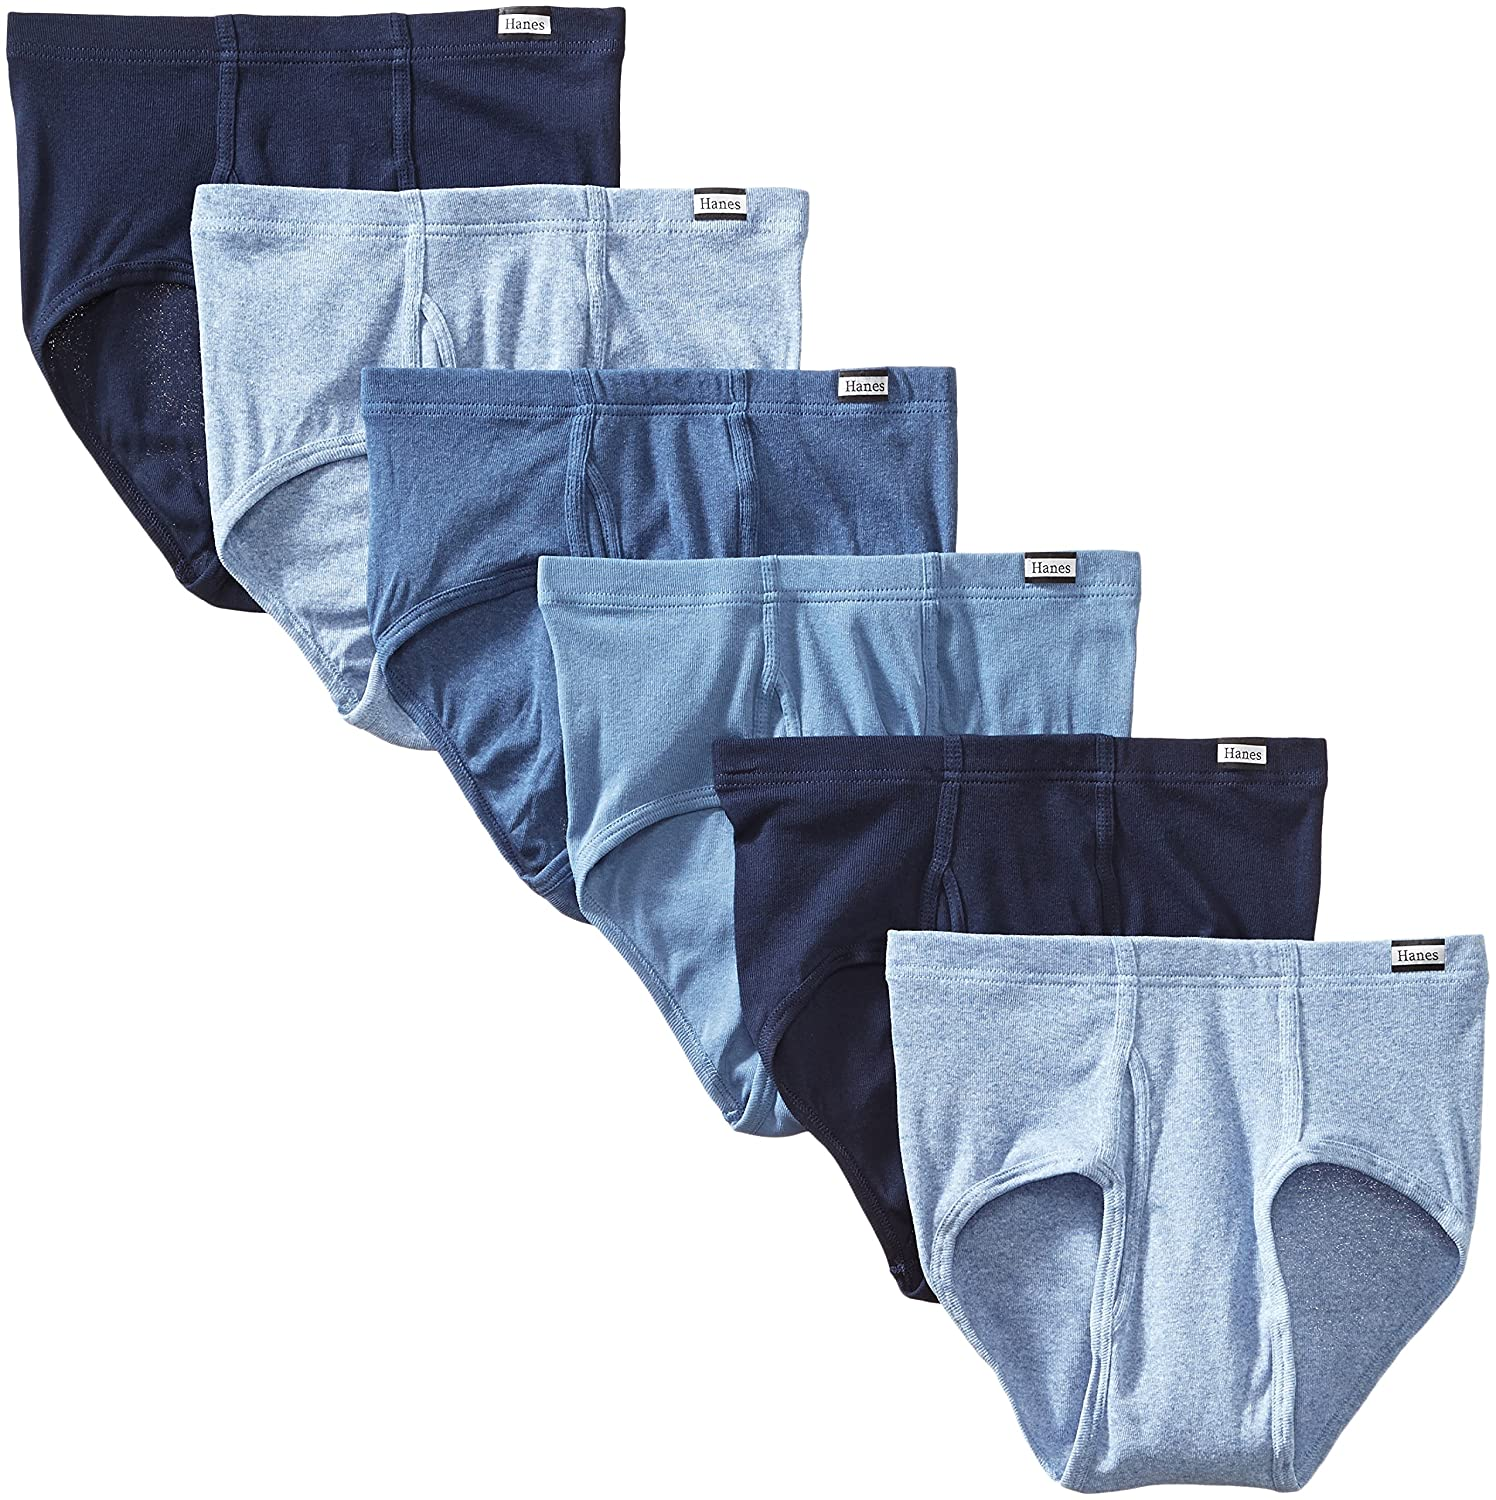 Hanes Men's Tagless No-Ride-Up Briefs with ComfortSoft Waistband, 6-Pack 7820N6